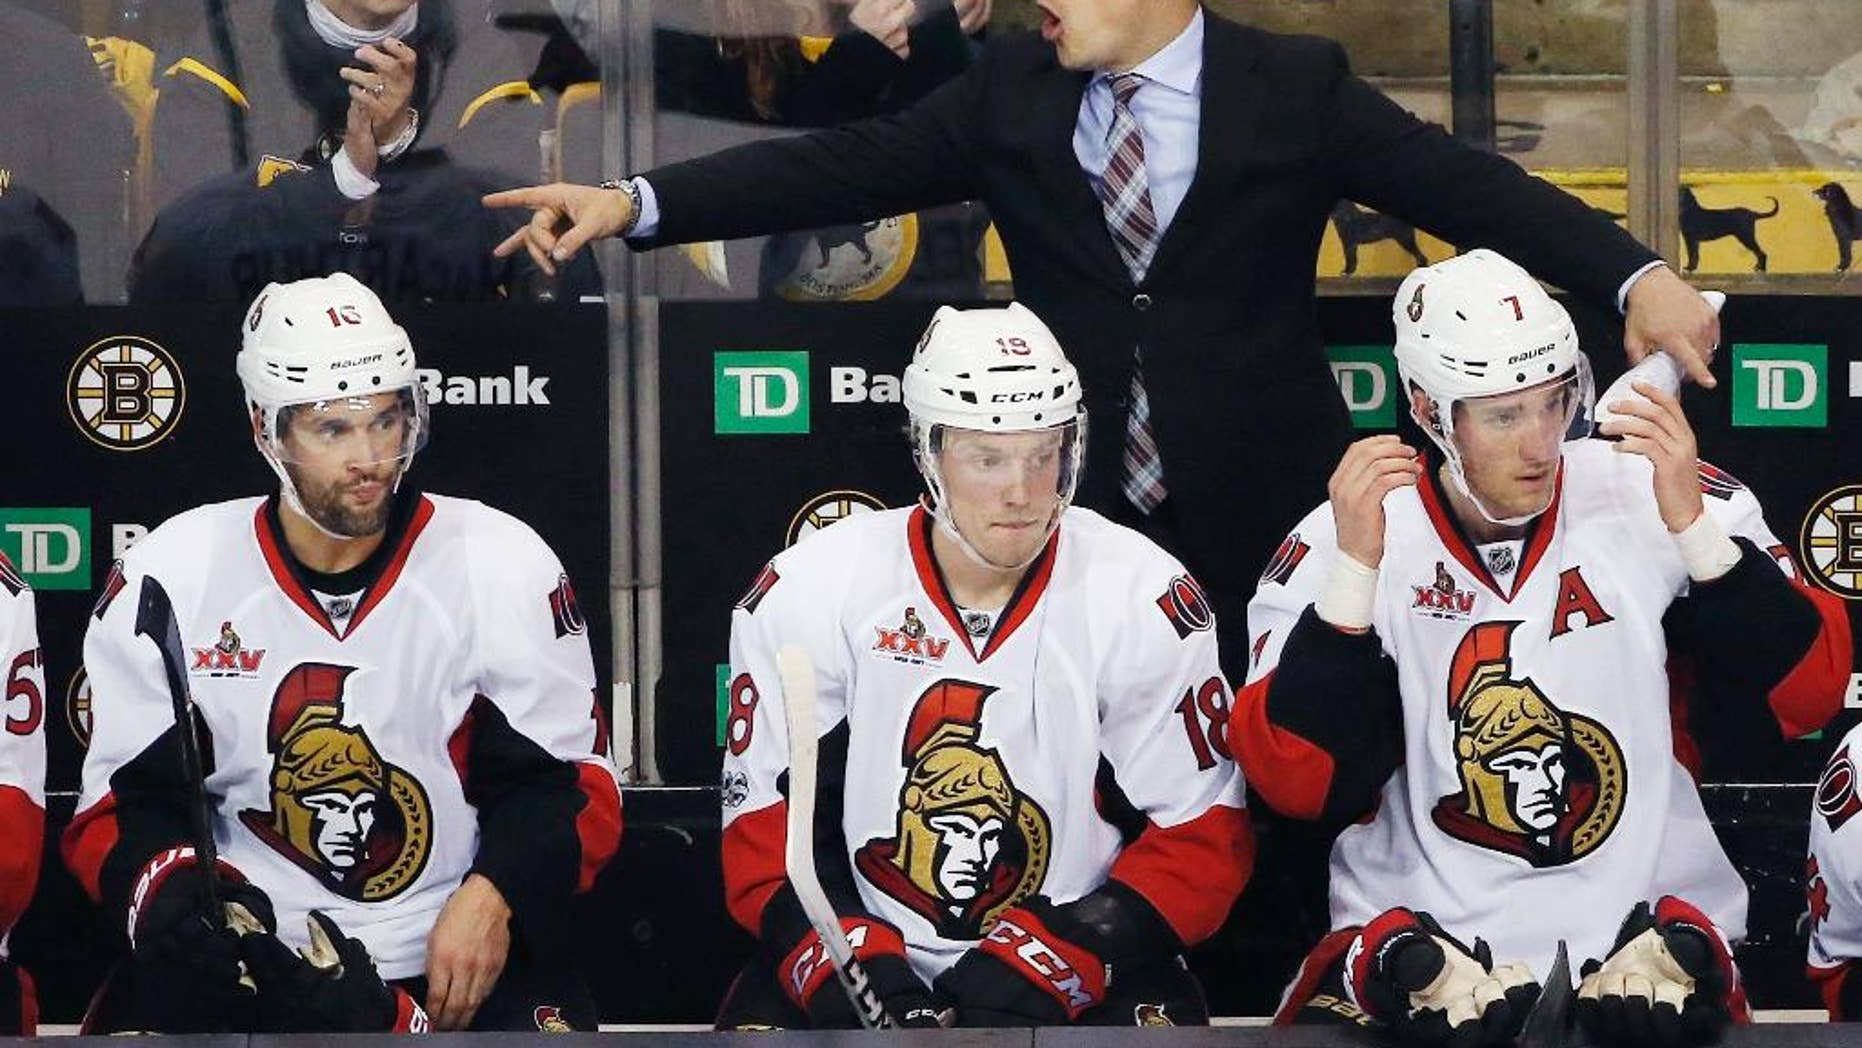 Ottawa Senators head coach Guy Boucher gives instructions during the third period in game six of a first-round NHL hockey Stanley Cup playoff series against the Boston Bruins, Sunday, April 23, 2017, in Boston. The Senators won 3-2 in overtime.(AP Photo/Michael Dwyer)